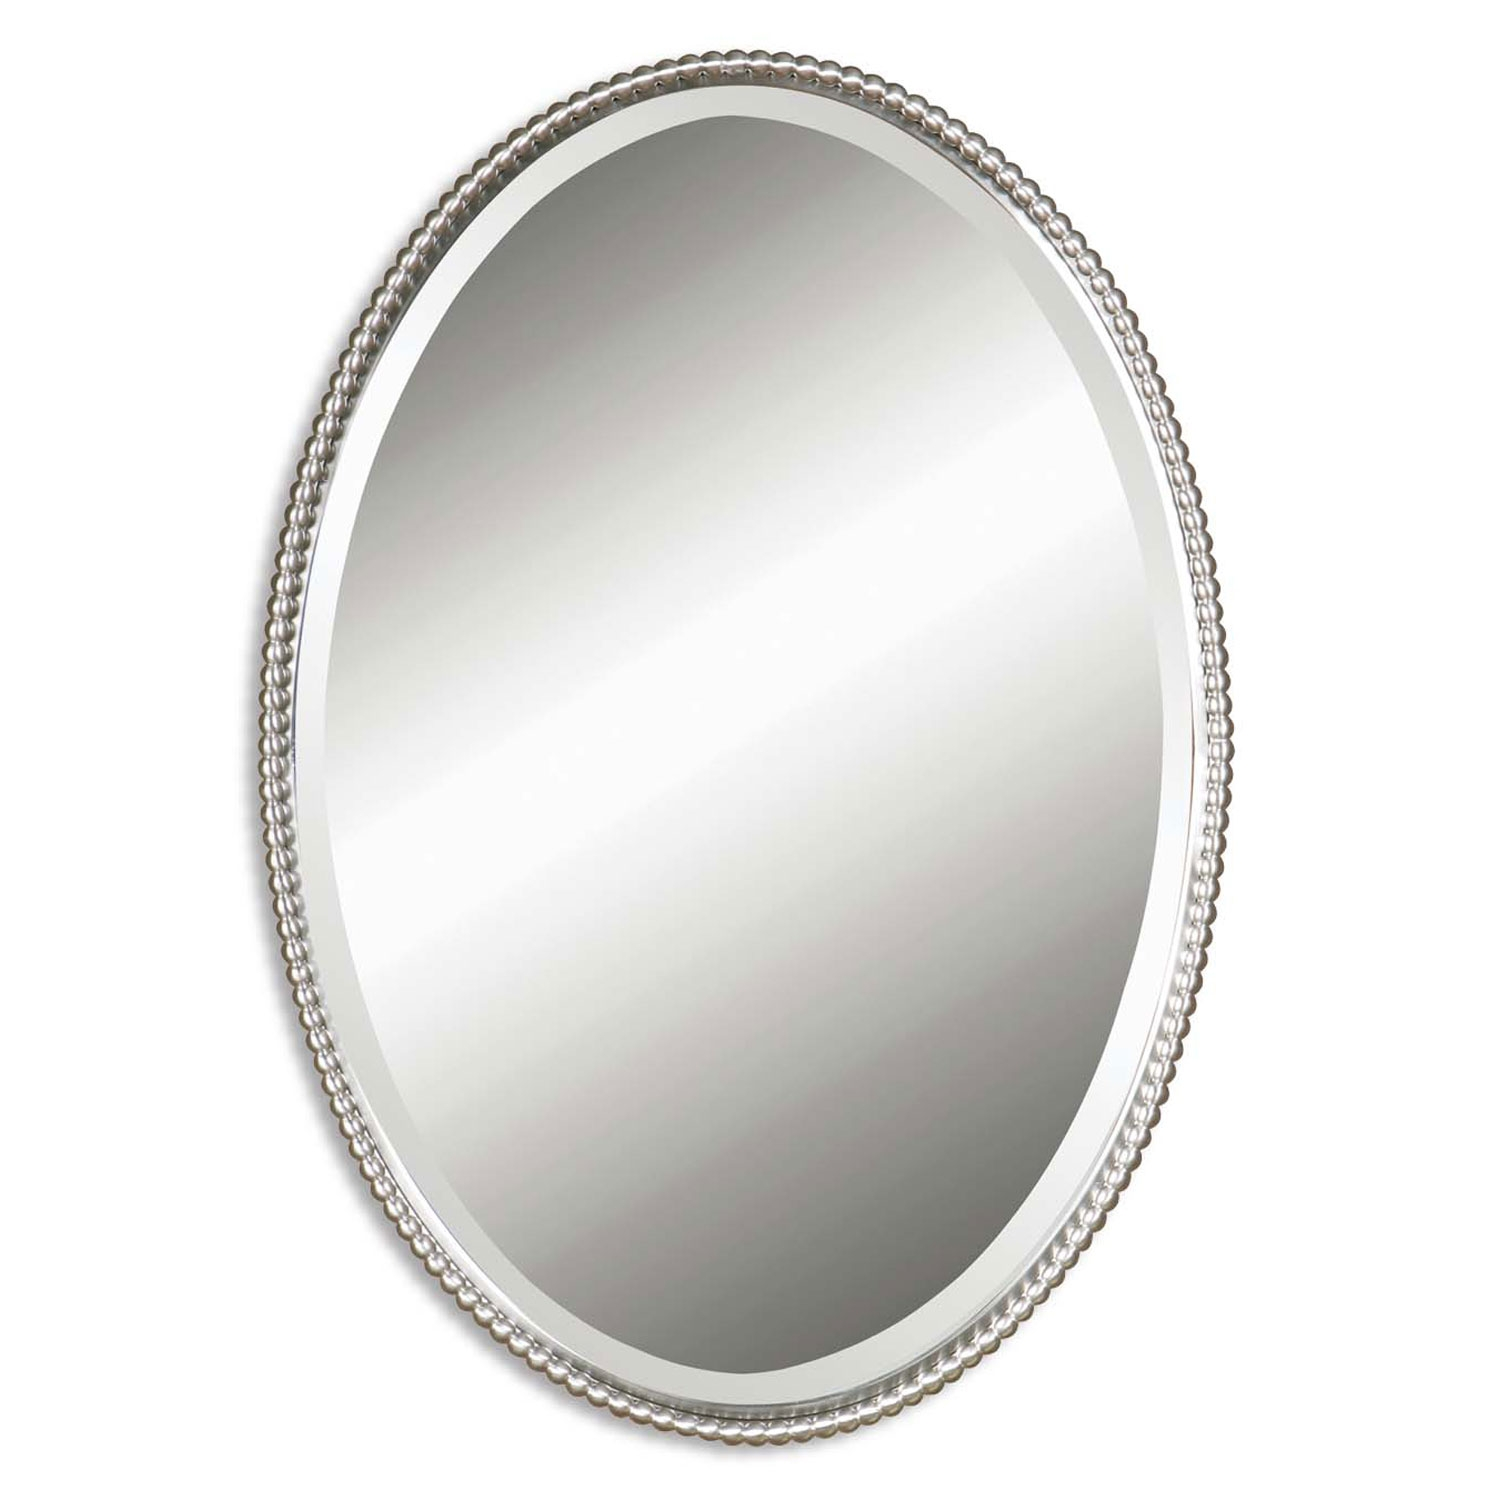 Sherise Brushed Nickel Oval Mirror Uttermost Oval Mirrors Home Decor Pertaining To Oval Bevelled Mirror (Image 10 of 15)